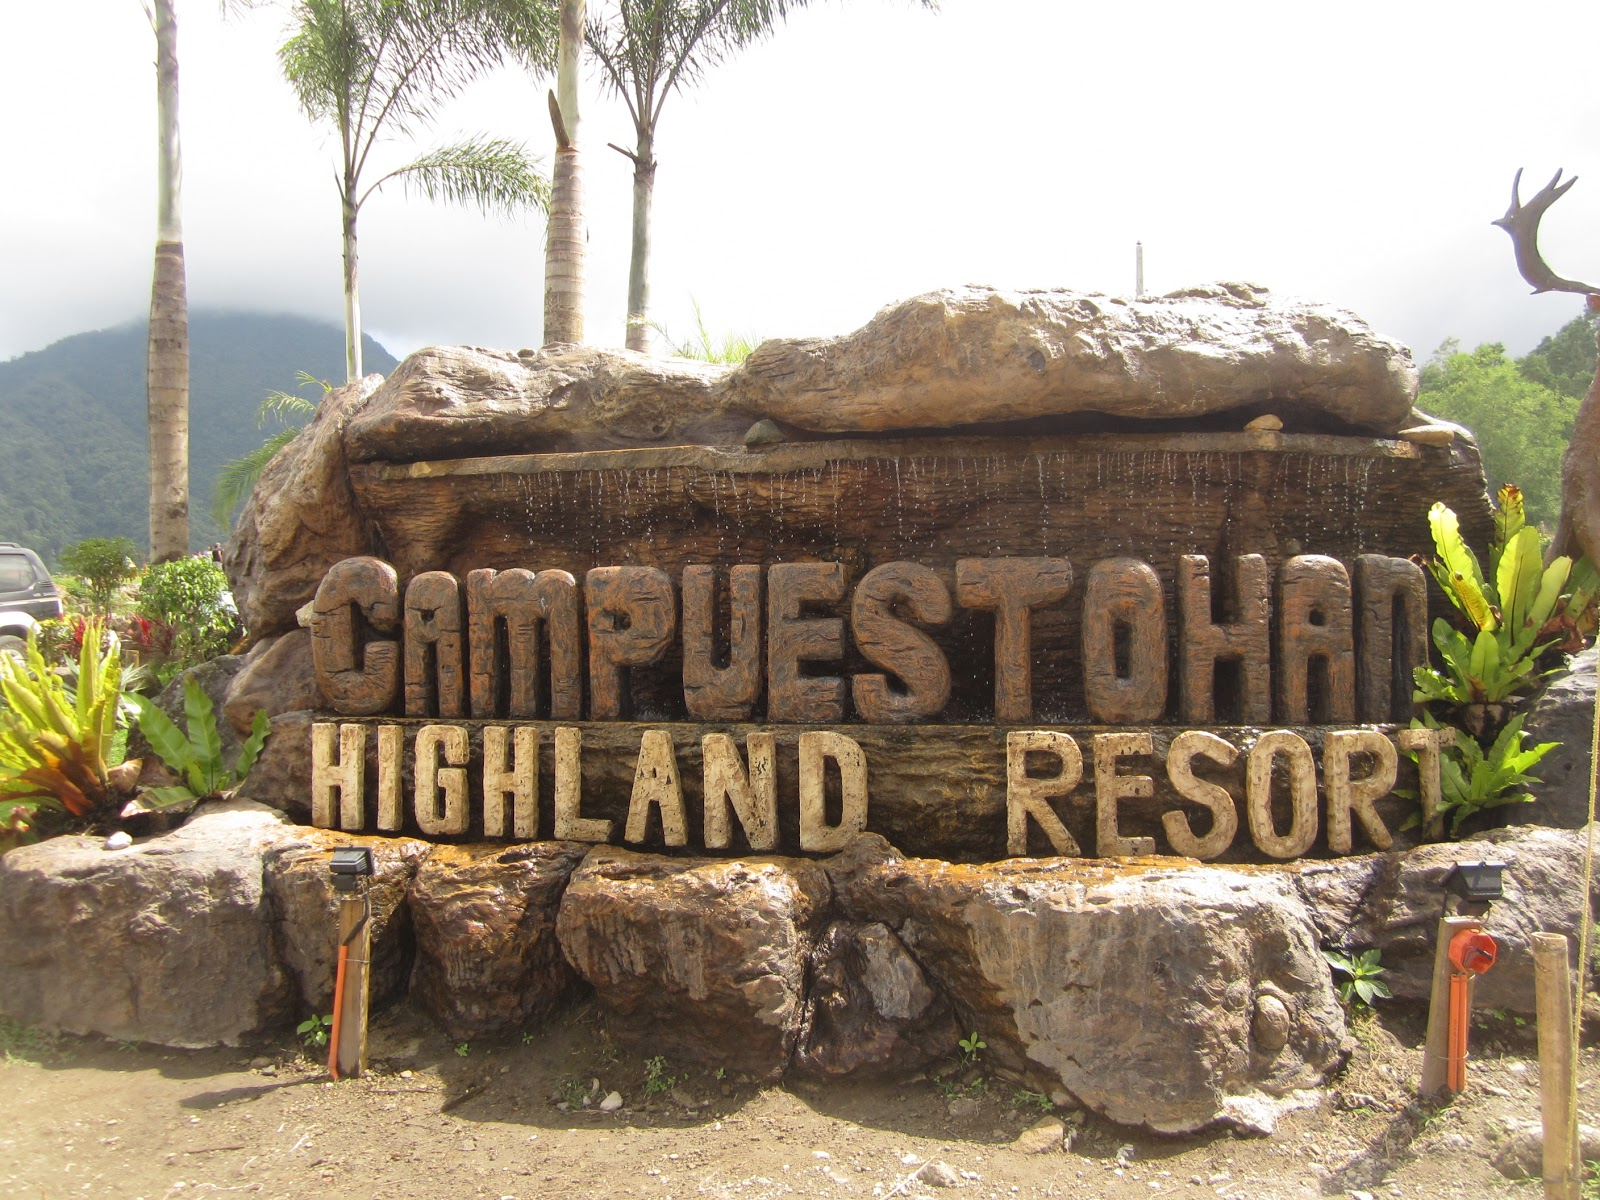 campuestohan highland resort bacolod city attracttour